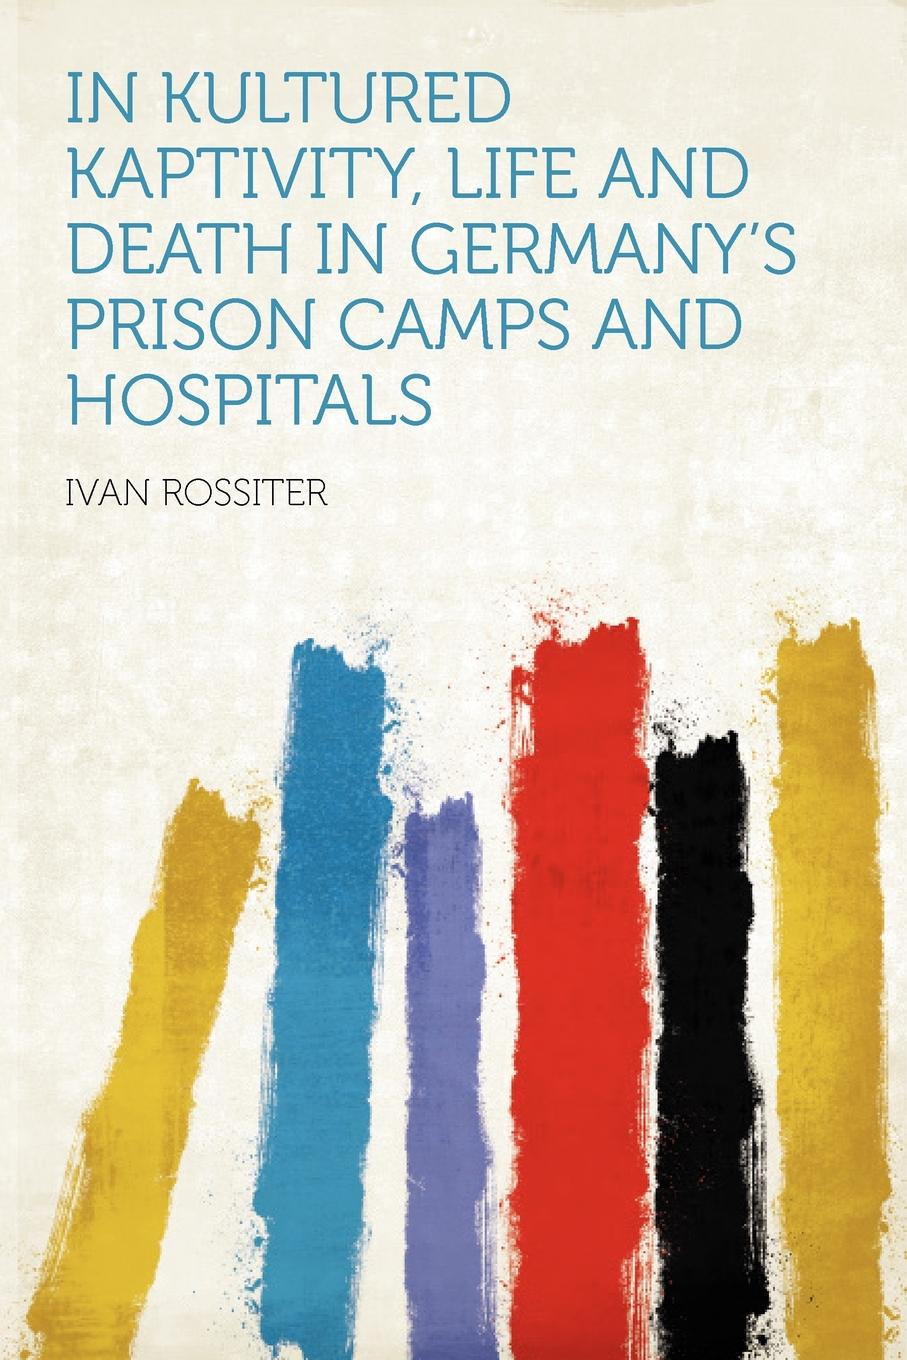 In Kultured Kaptivity, Life and Death in Germany.s Prison Camps and Hospitals